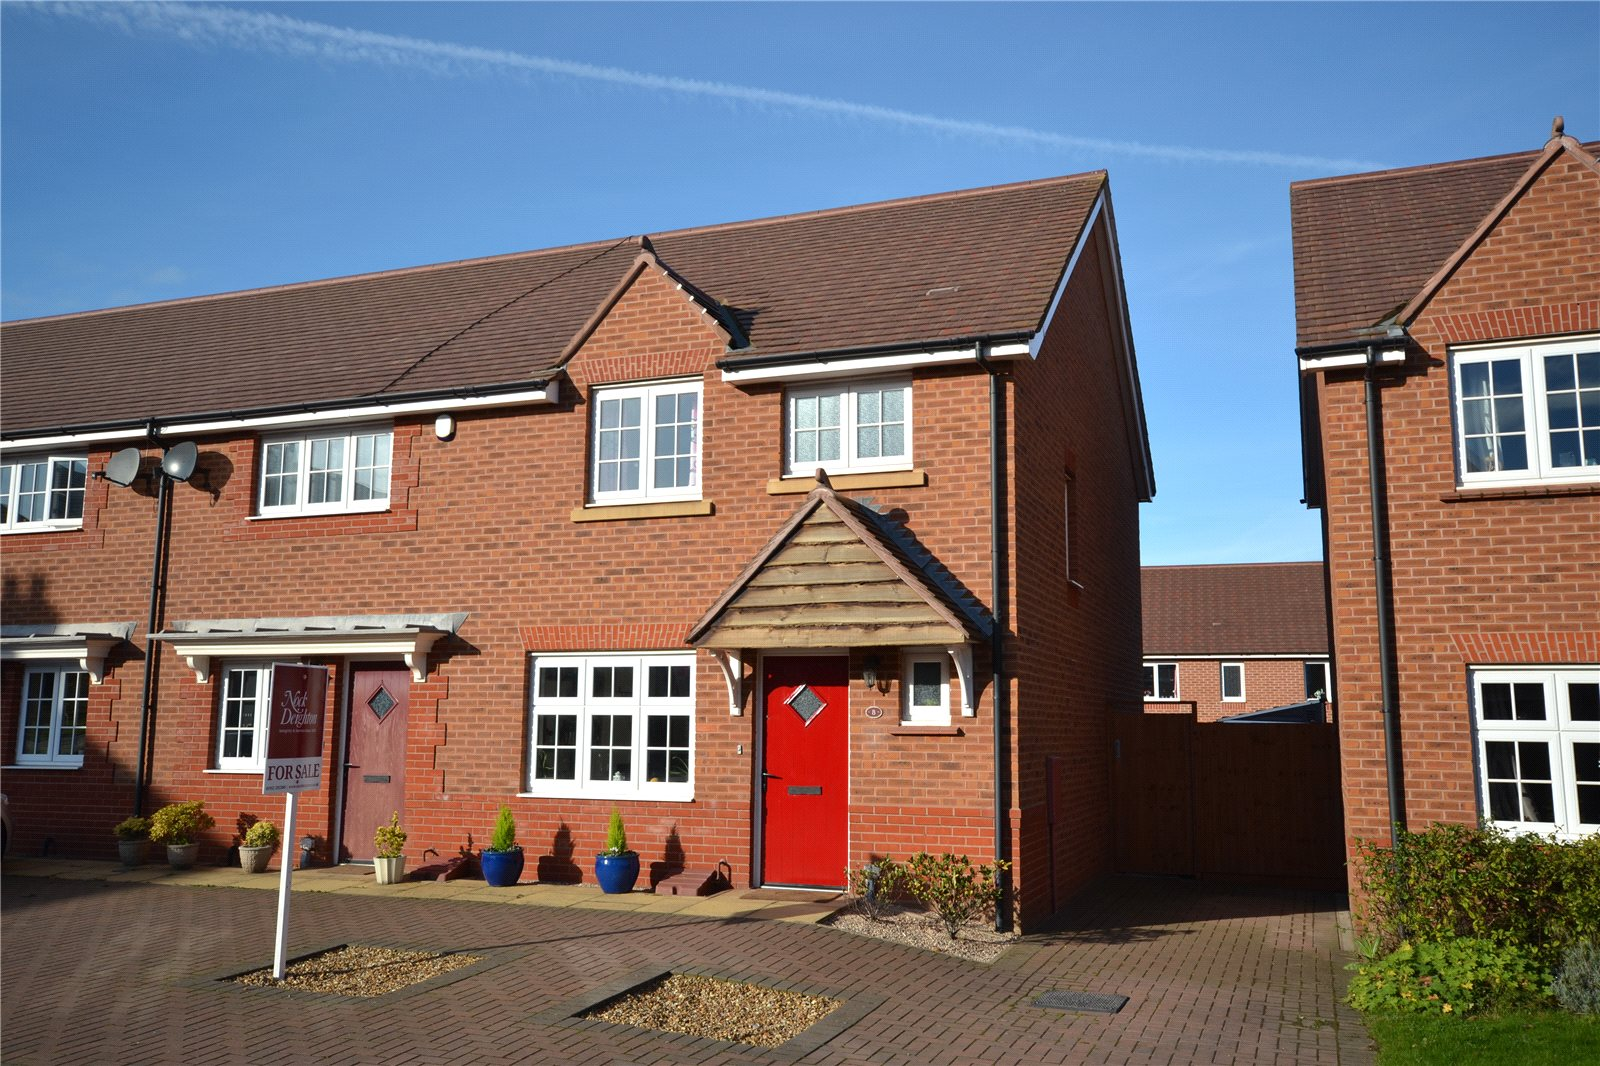 3 Bedrooms End Of Terrace House for sale in 8 Bakers Lock, Hadley, Telford, TF1